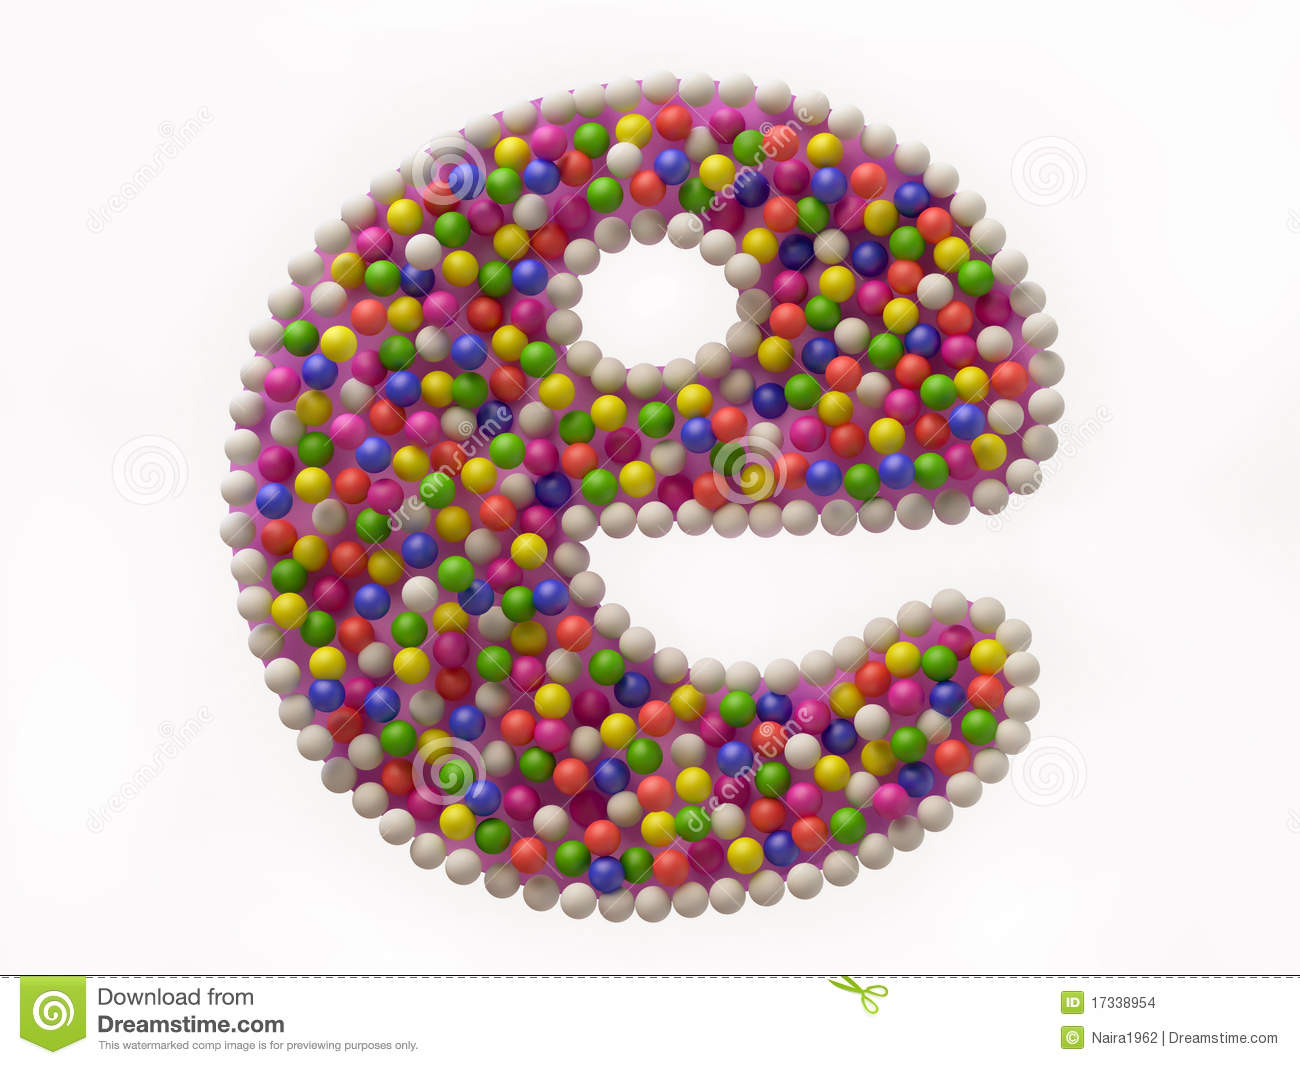 Colorful candy e symbol for internet stock illustration colorful candy e symbol for internet biocorpaavc